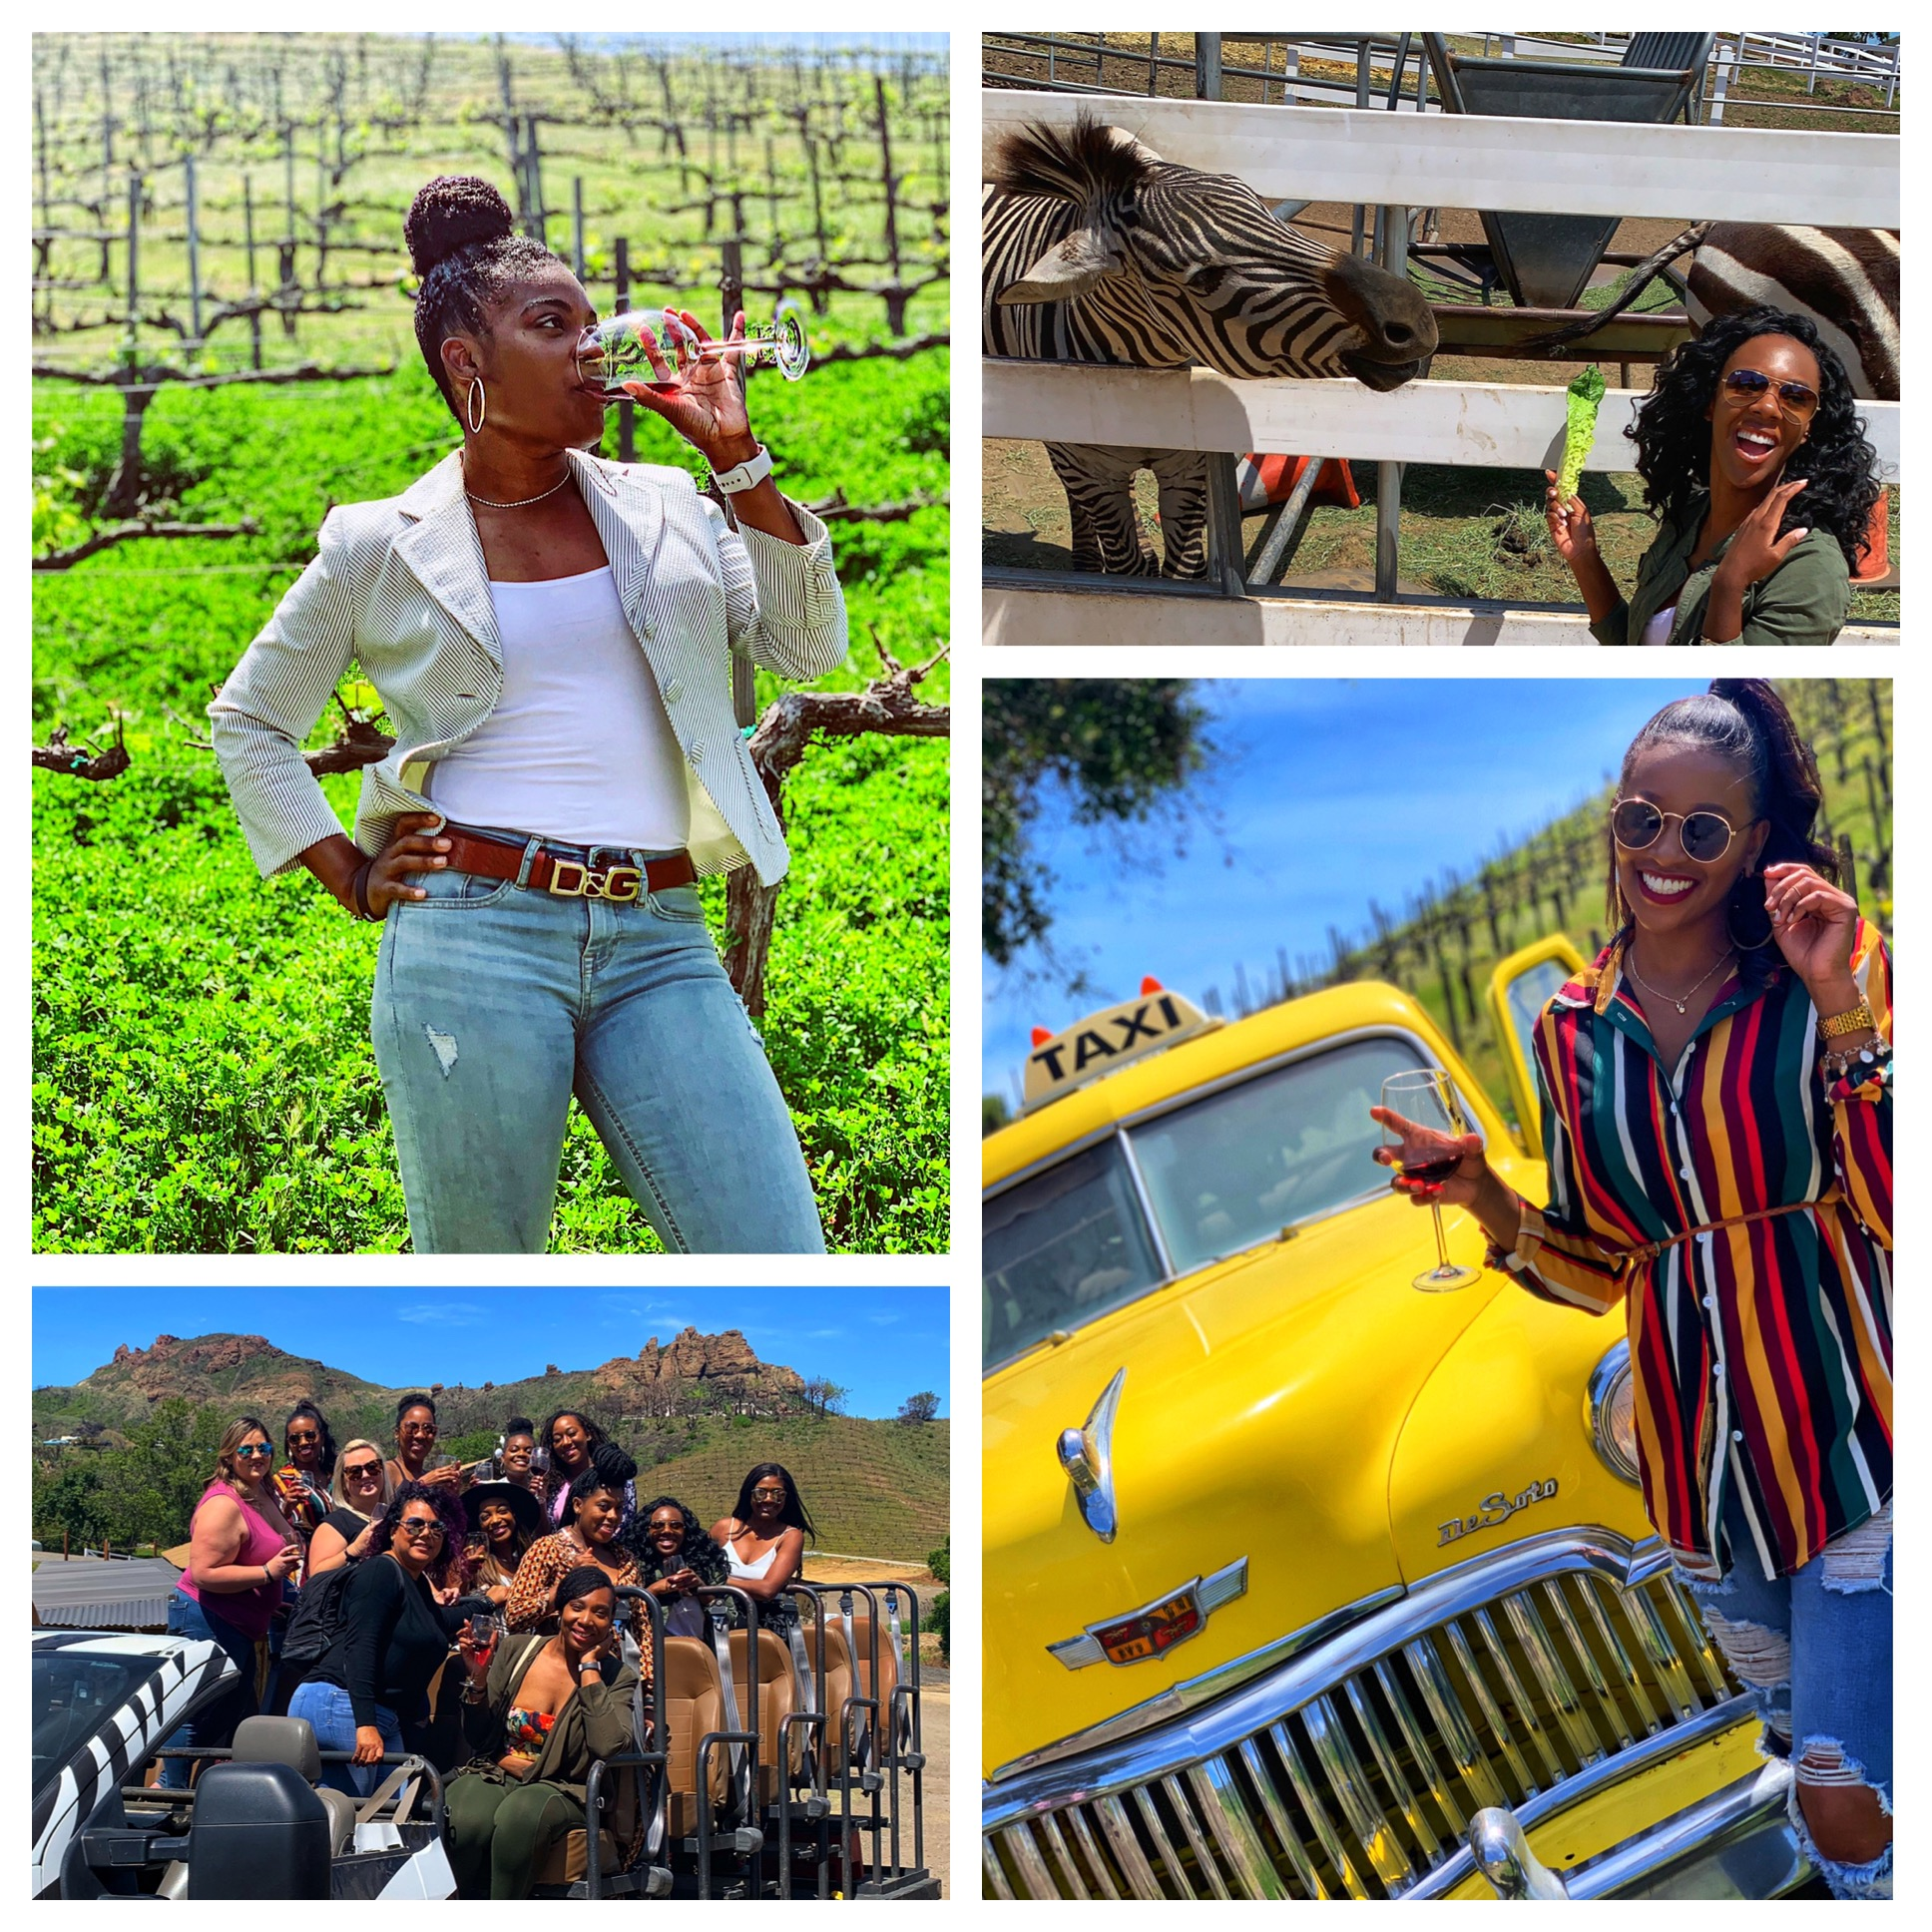 Malibu Wine Safari & Brunch - Includes:✓Private nurses tour at Malibu Wine Safaris✓Brunch over looking the ocean at Moonshadows restaurant✓Luxury round trip transportation from Santa Monica to Malibu✓End the day on the beach at the Santa Monica Pier✓Nurse swag bag filled with goodies